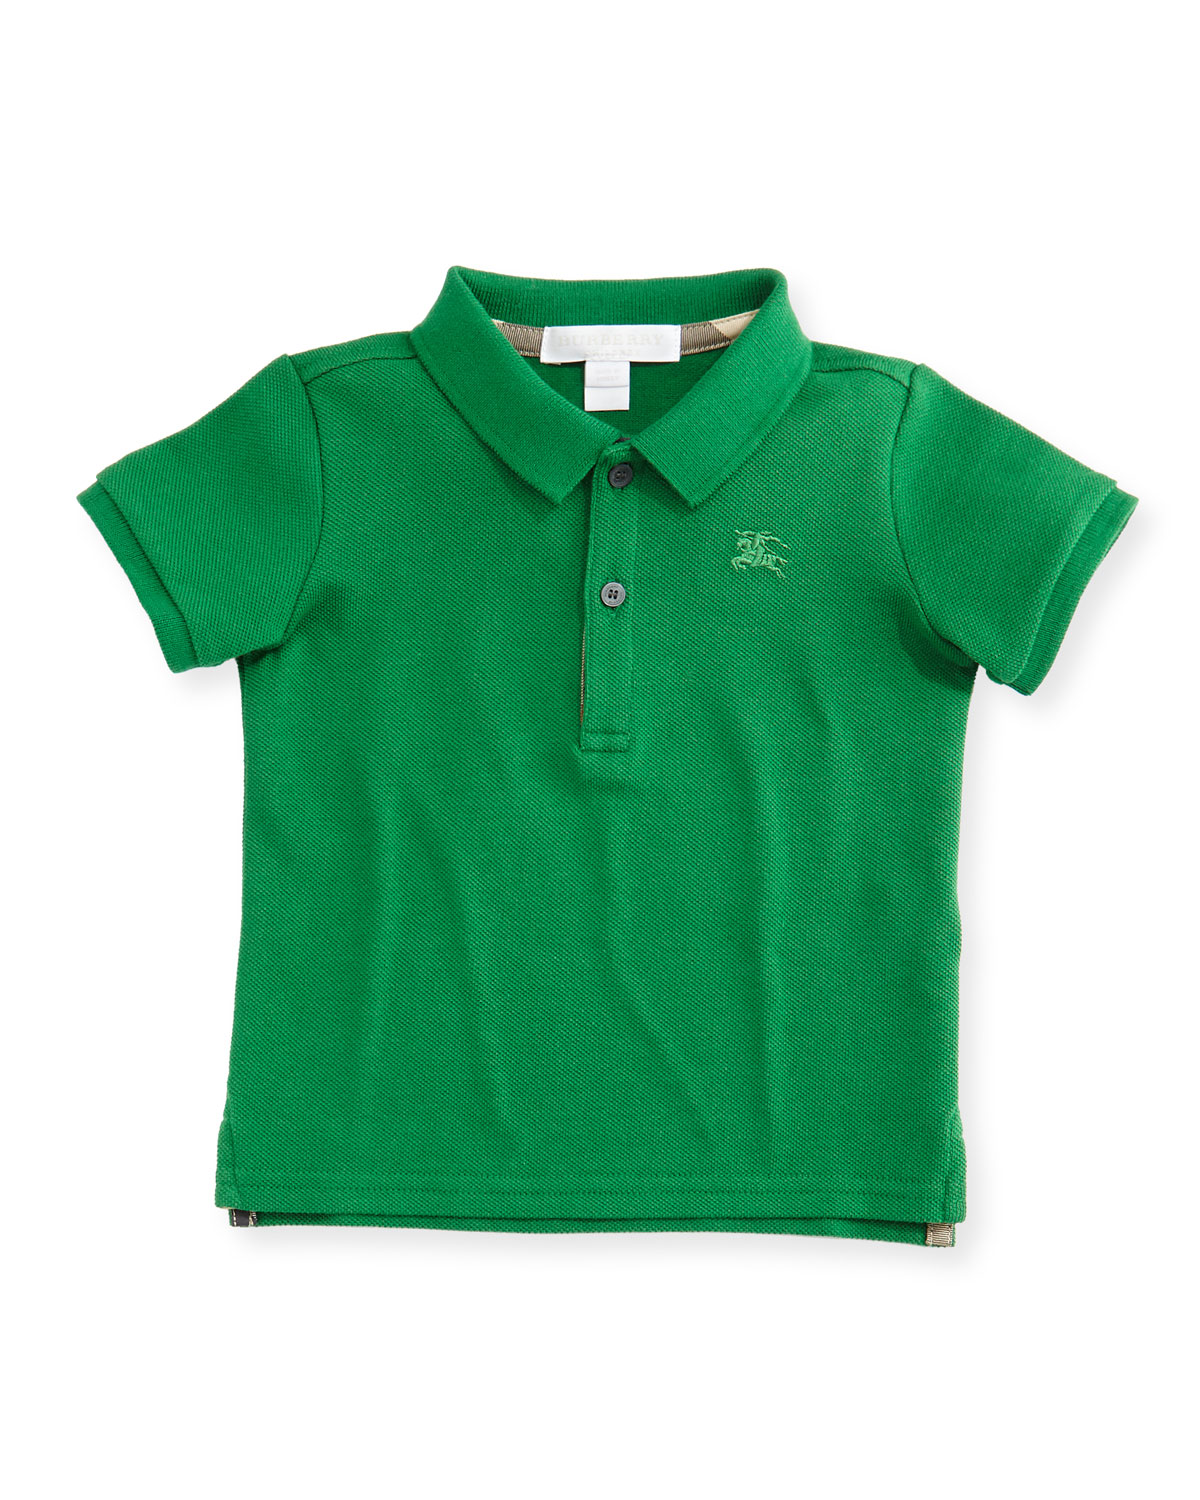 Palmer Short-Sleeve Pique Cotton Polo Shirt, Green, Size 6M-3